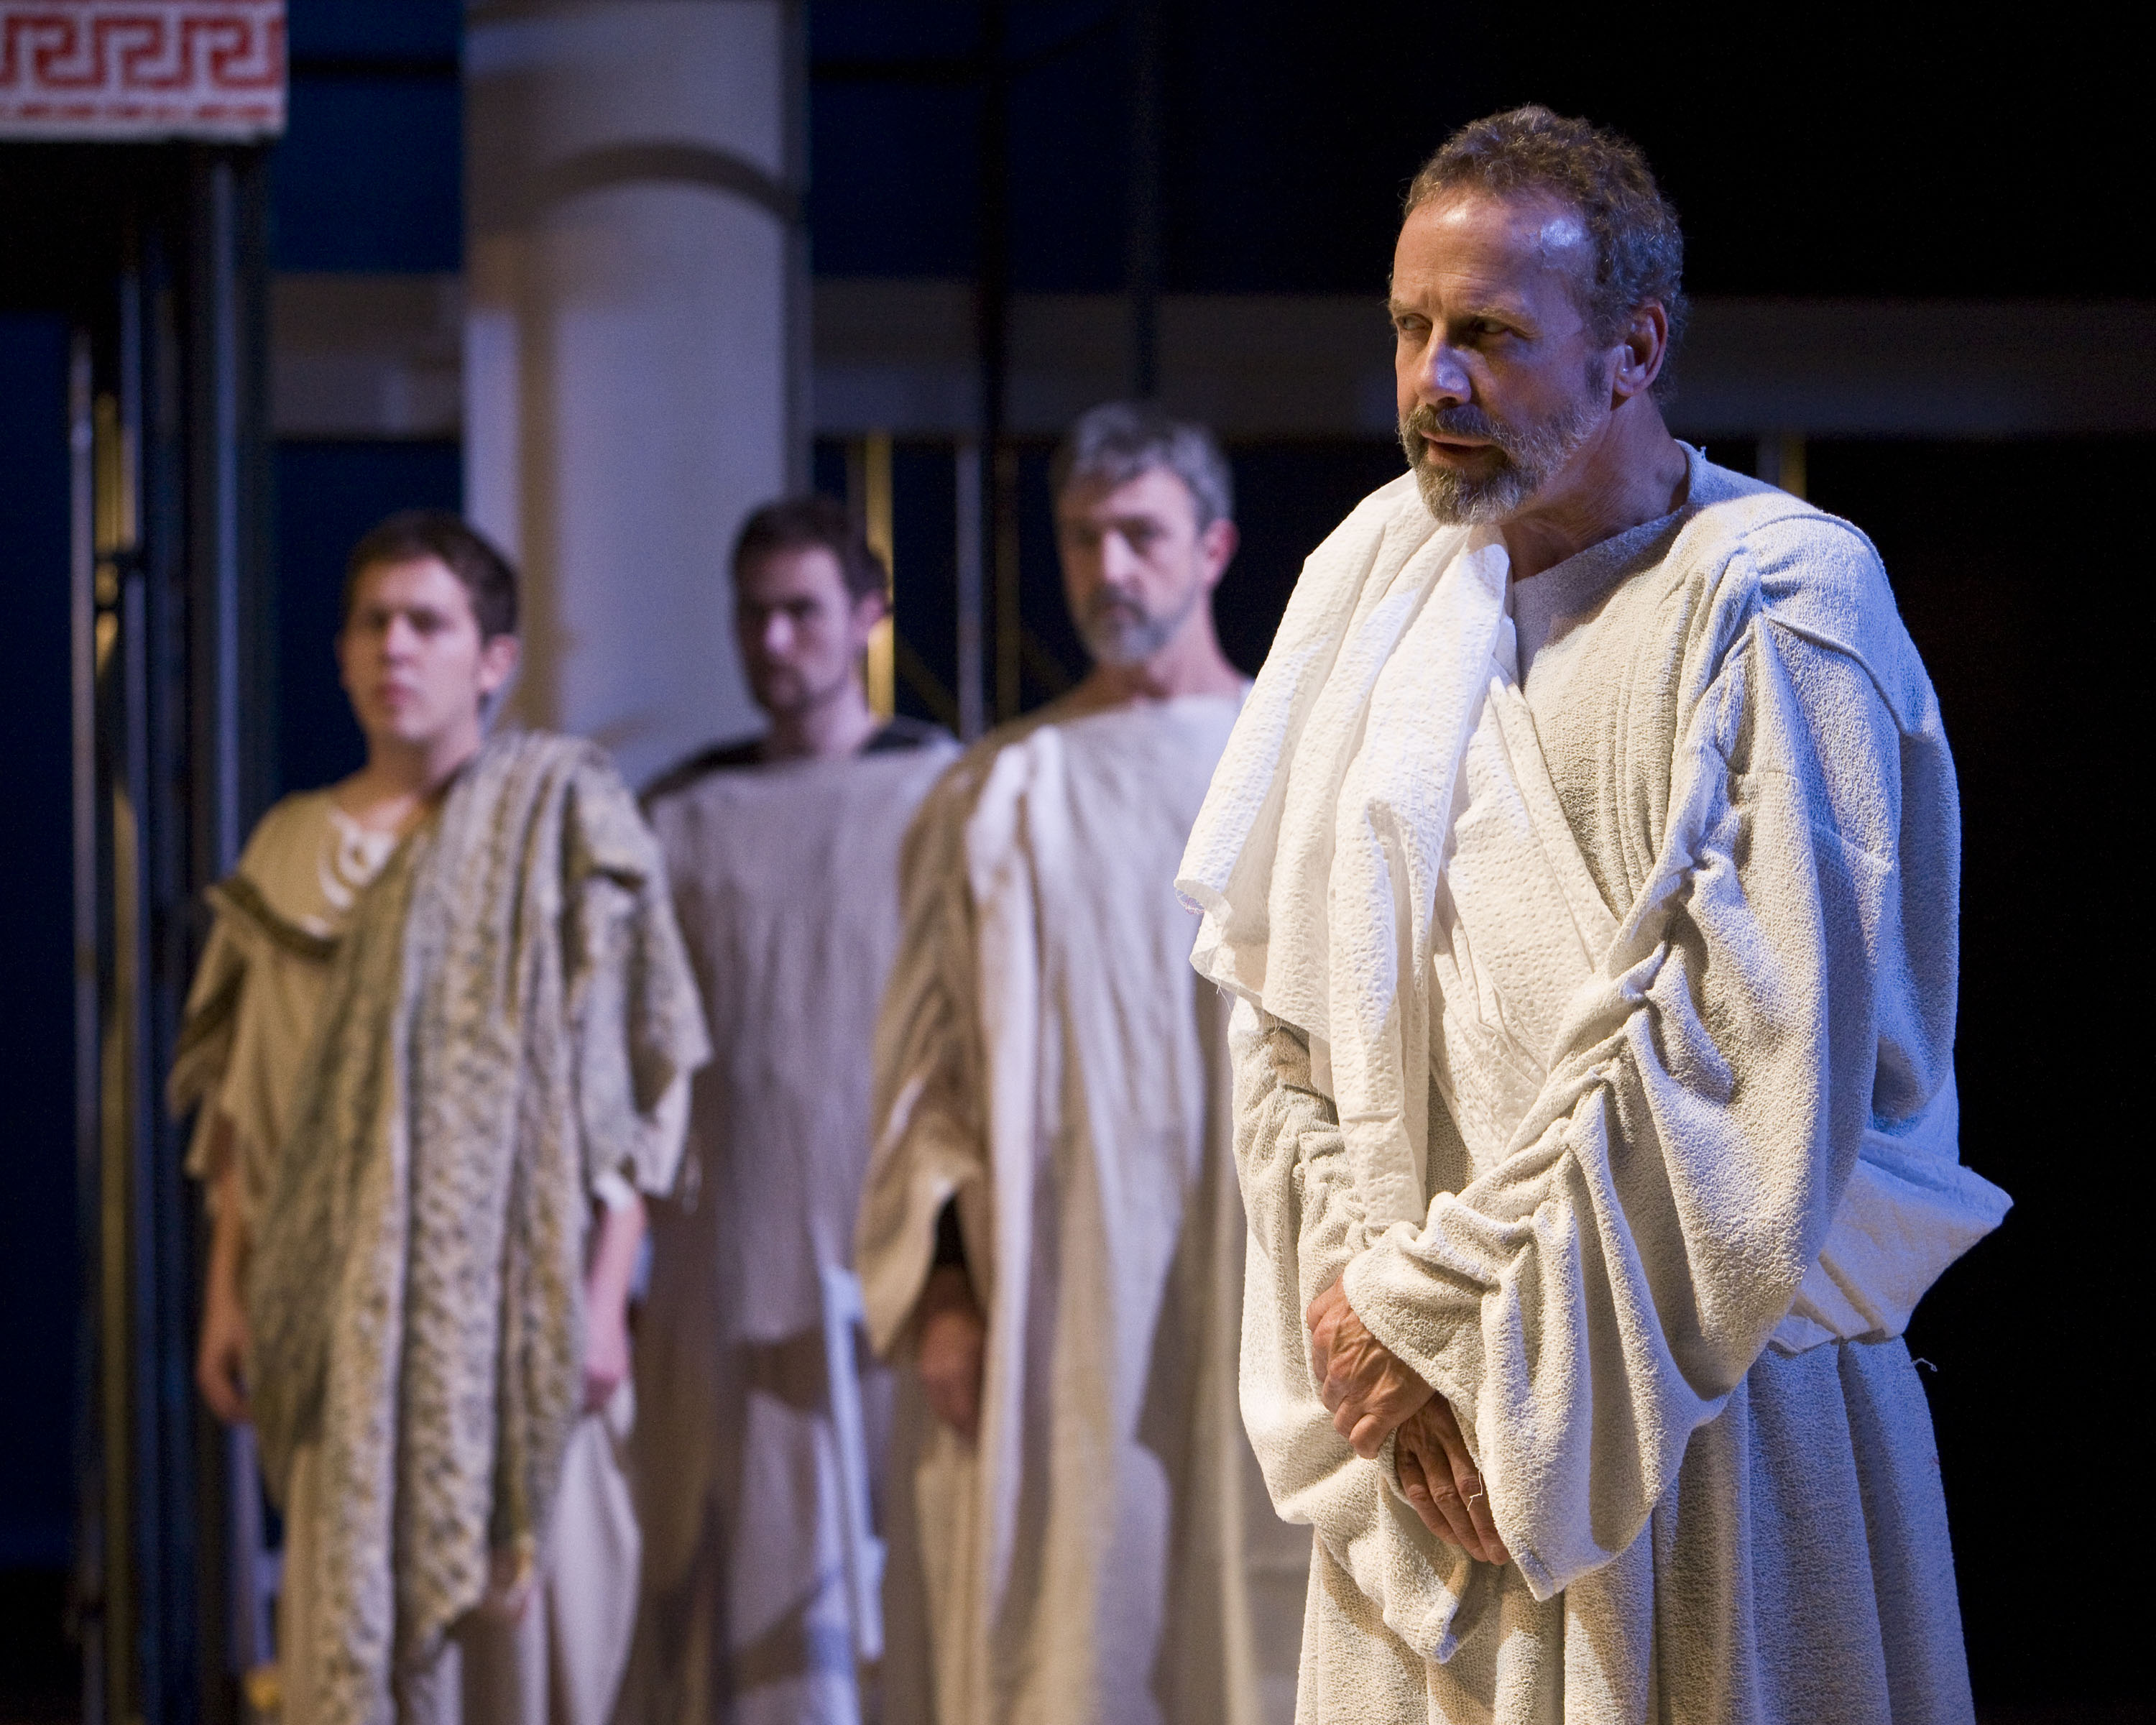 los angeles theater review antony and cleopatra a noise in there is nothing particularly comic in antony and cleopatra as a whole though the play undoubtedly has its comic moments which occasionally serve to